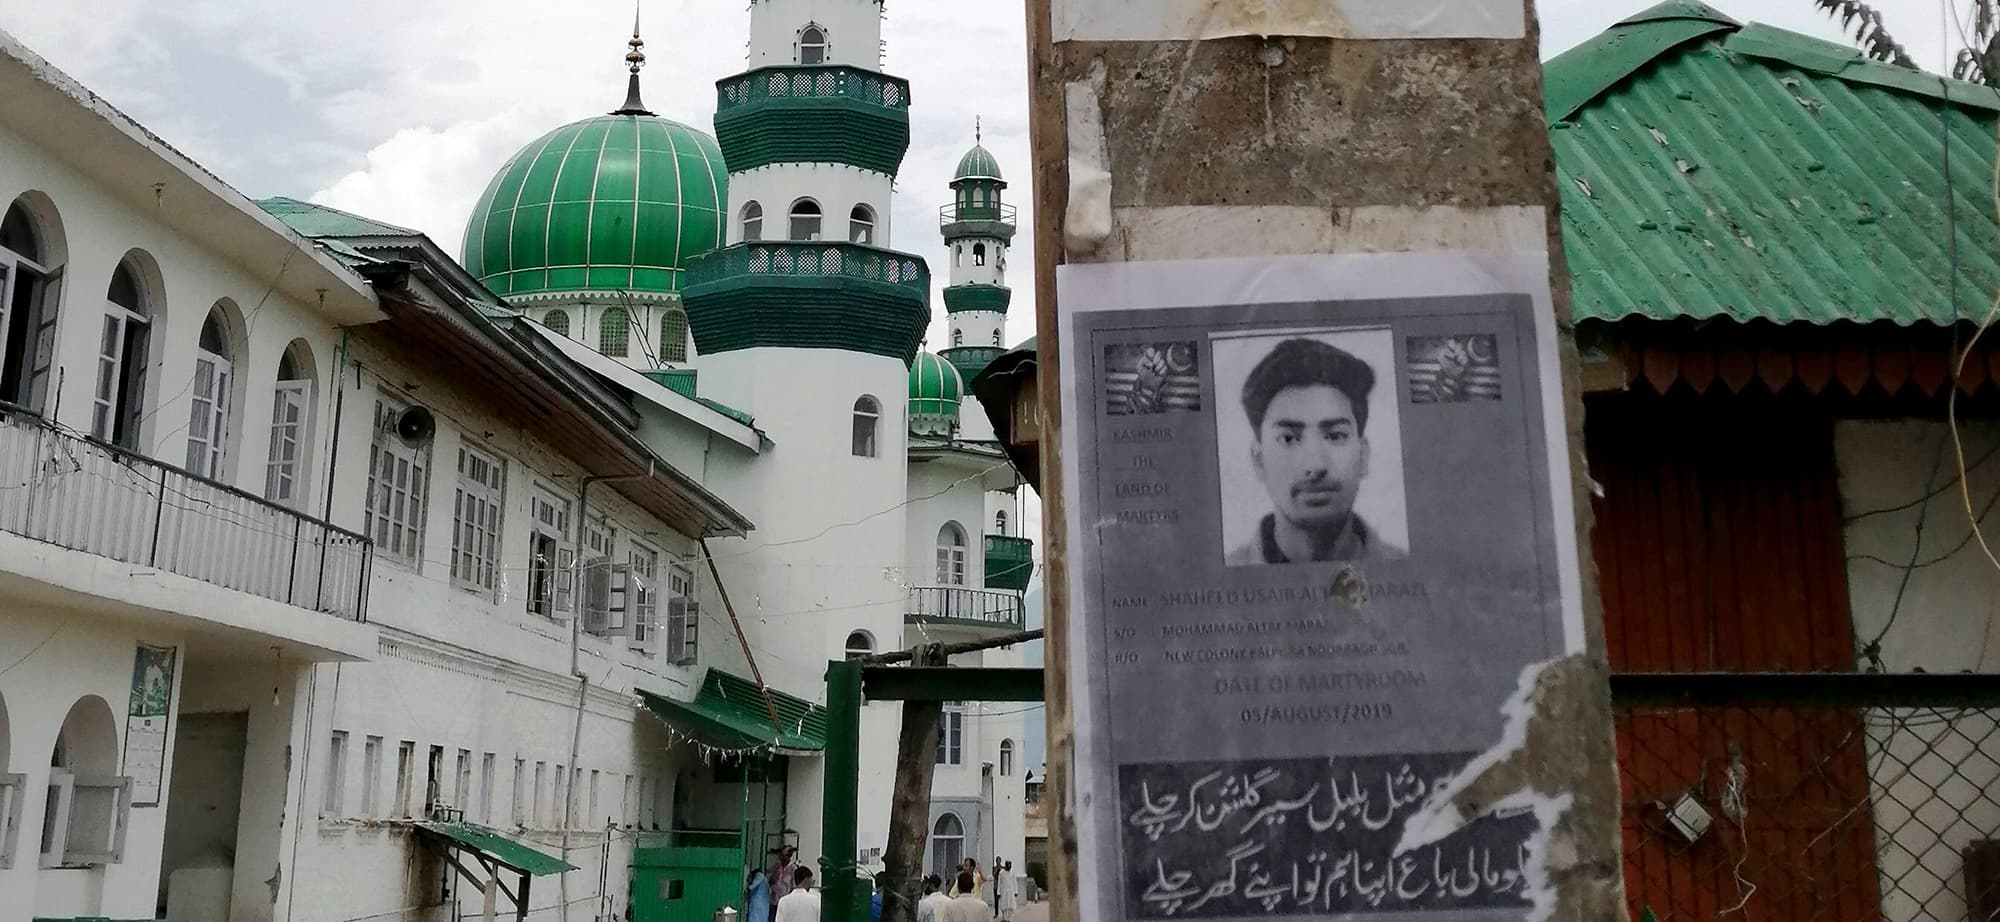 This picture taken on August 16, 2019, shows a poster of Kashmiri youth Usiab Ahmad, who died from drowning on August 5 after an alleged encounter with Indian government forces, near the Asar Shareef Jenab Saheb Mosque in the Soura locality of Srinagar. - Three deaths have been claimed by Kashmiri familes in the latest round of unrest in the region, but Indian authorities have not acknowledged any fatalities since the massive security and communications lockdown was imposed on August 5 following the decision to strip the region of its autonomy. (Photo by Jalees ANDRABI / AFP) / To go with 'IND